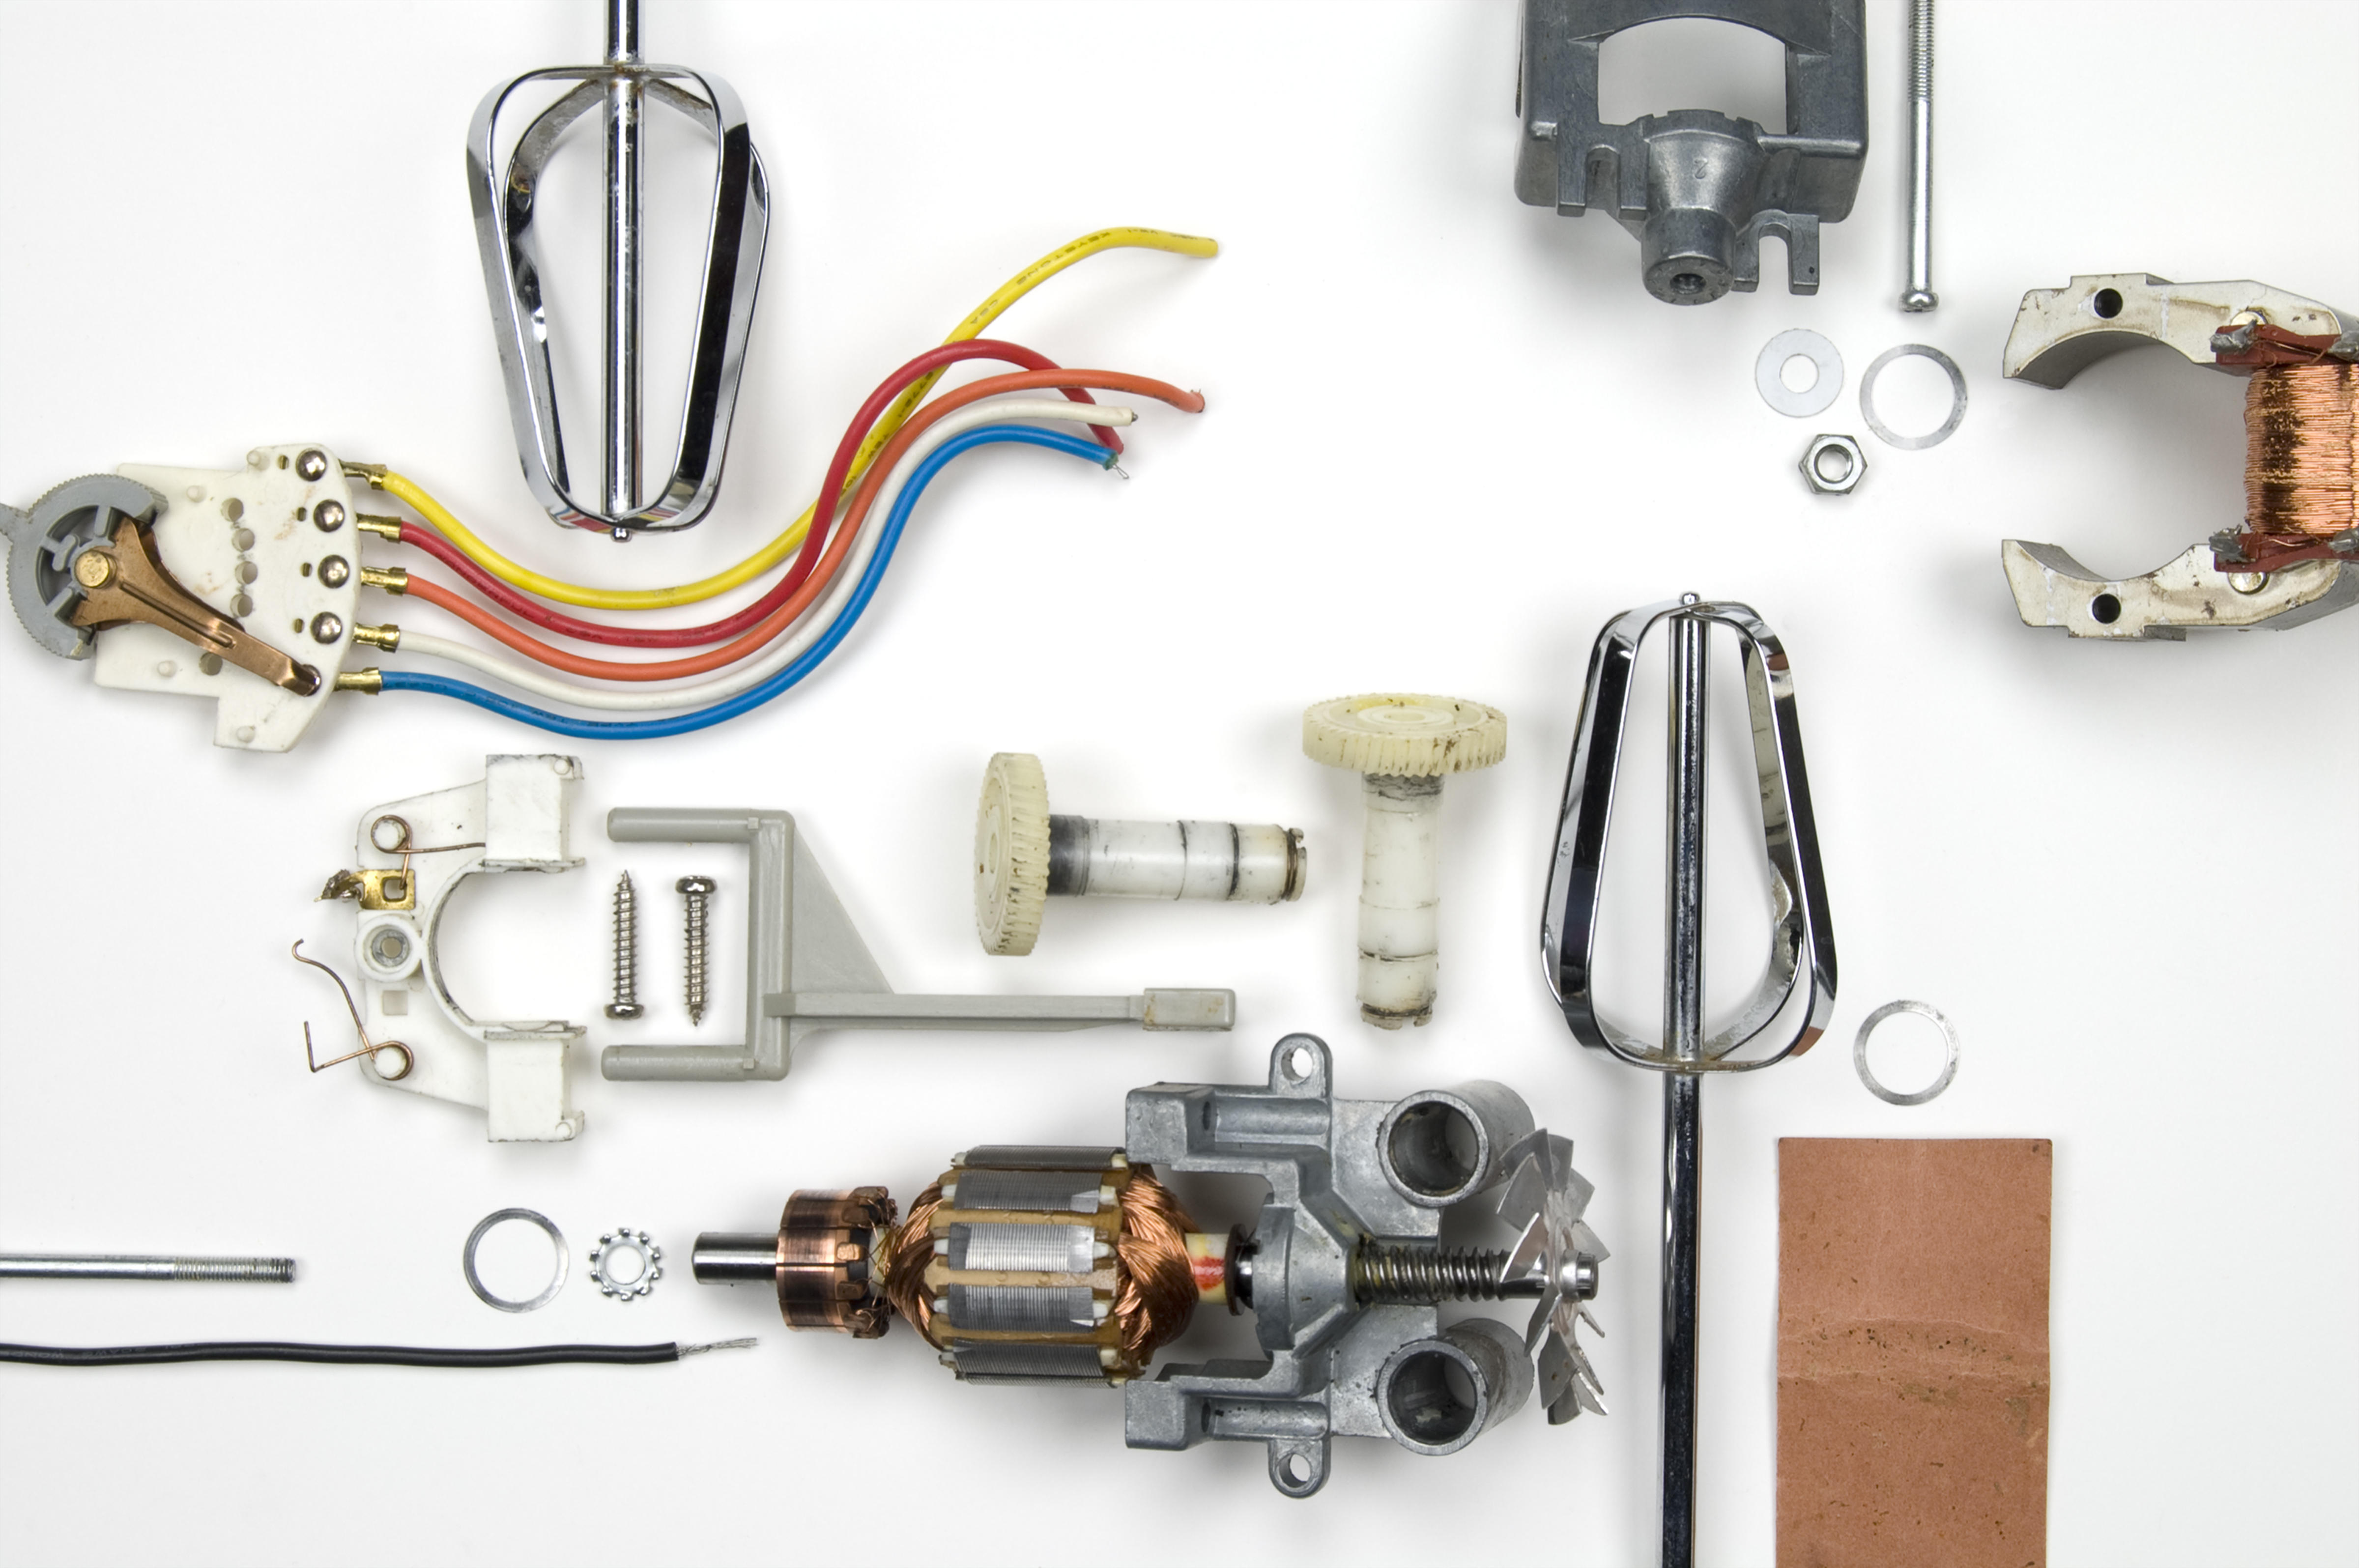 The Beauty of Disassembled Appliances